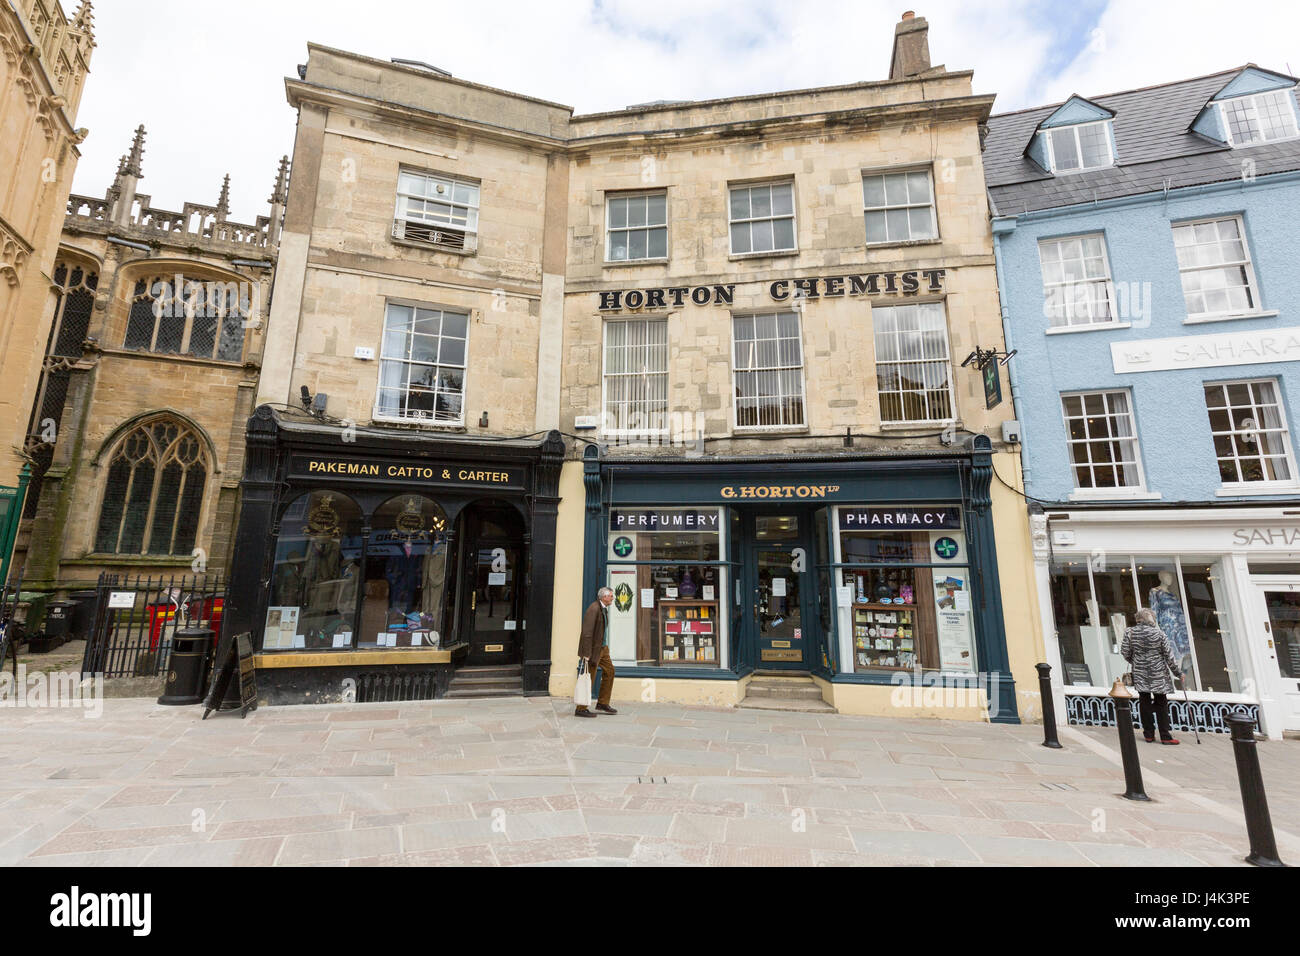 Pakeman Catto & Carter, Men's clothing store, and Horton Chemist and  Pharmacy at Market Place, Cirencester, - Stock Image